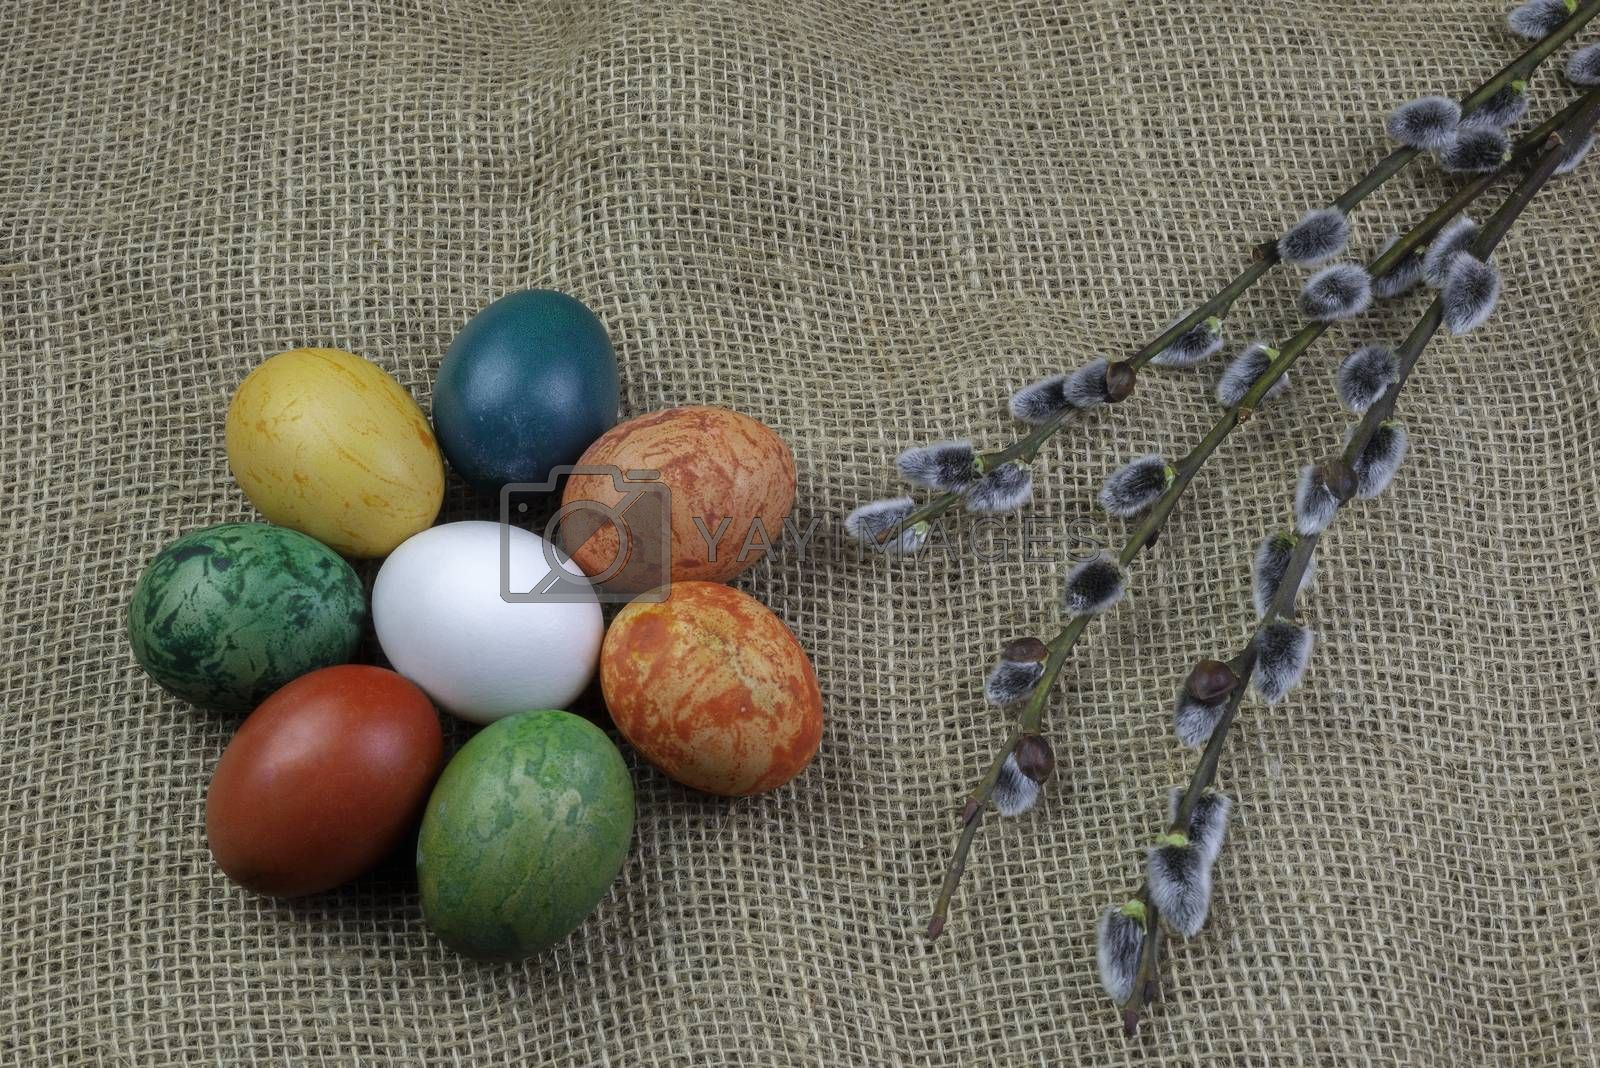 A view of eight differently colored Easter eggs with twigs of willow catkins